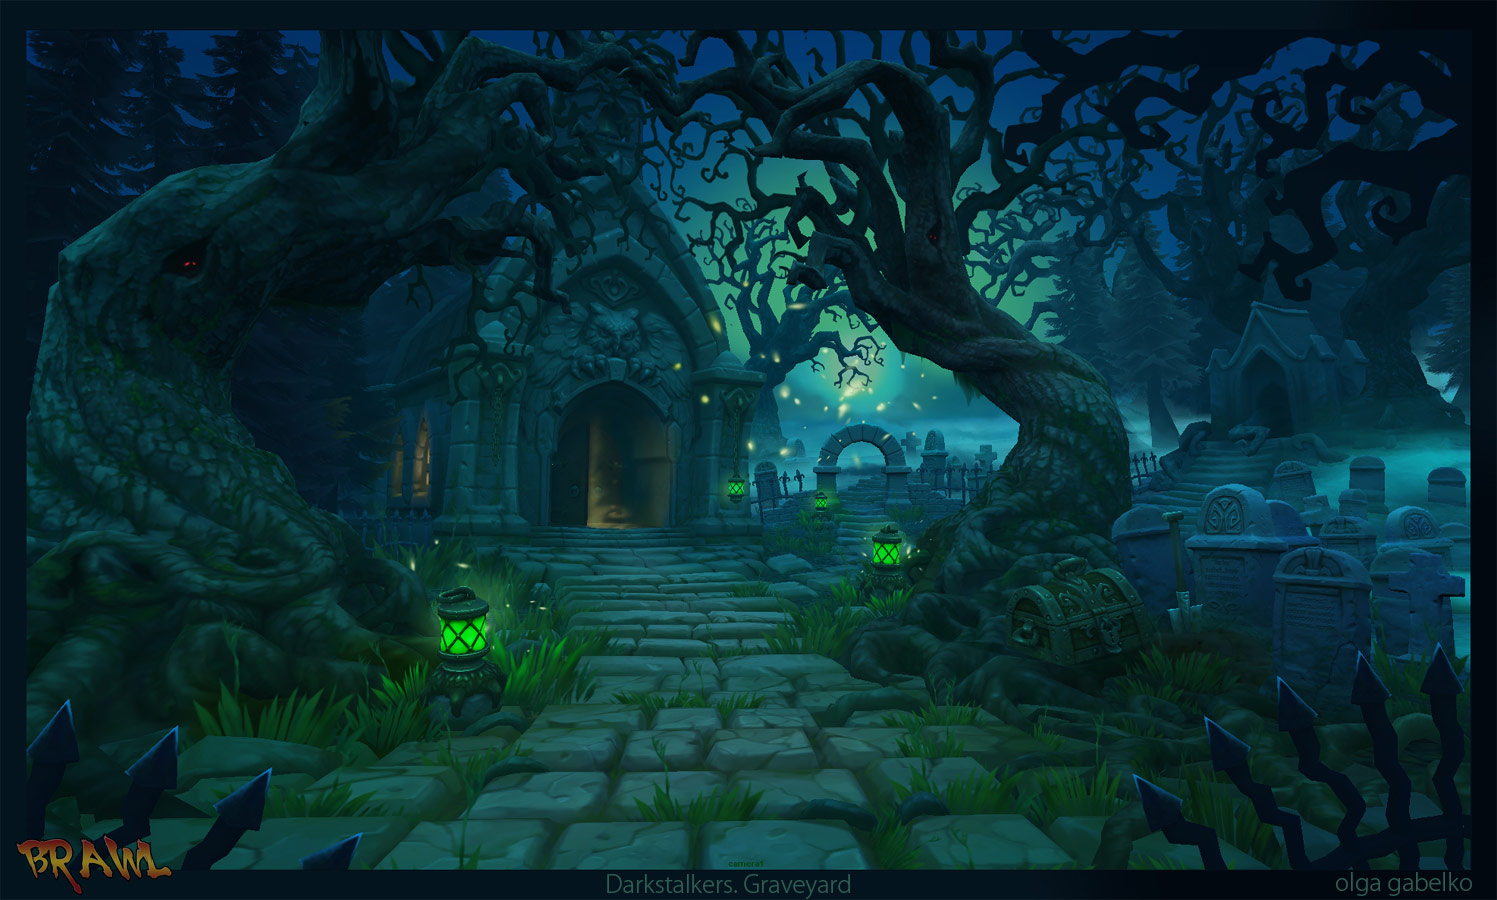 Darkstalkers graveyard stage reimagined image #2